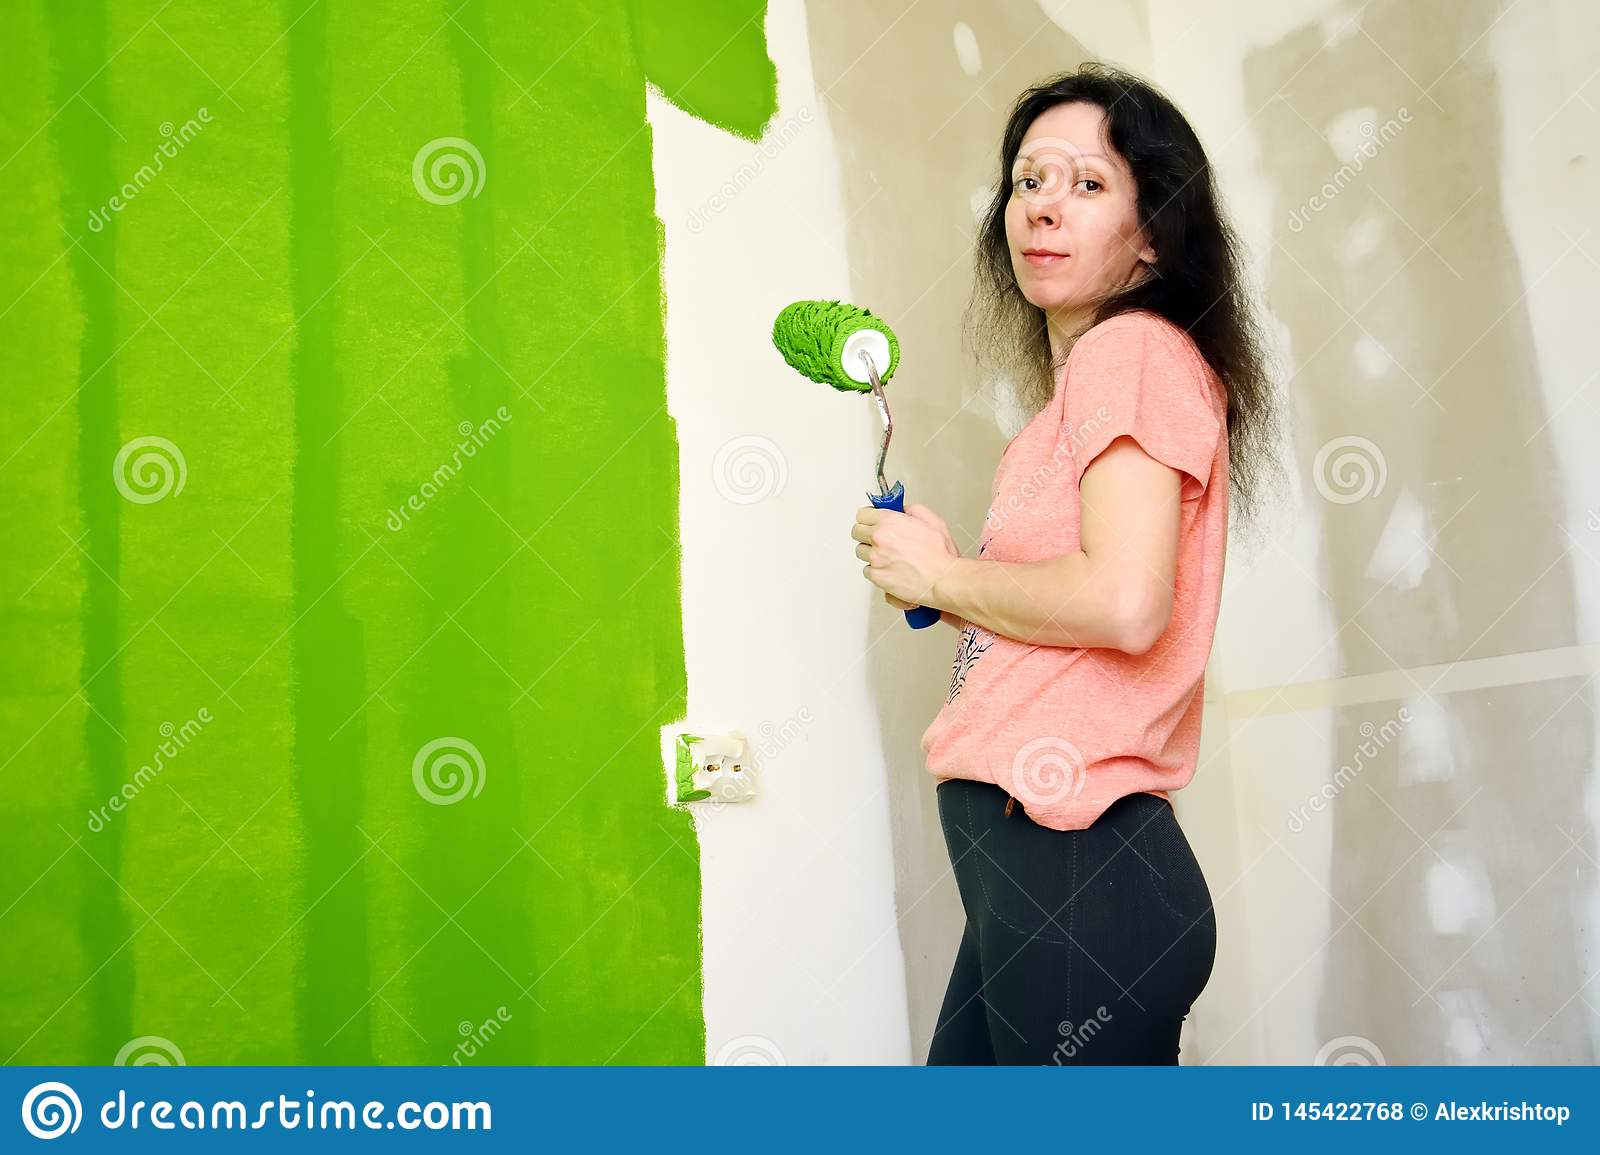 Pretty young woman in pink t-shirt is smiling and keeping roller, painting green interior wall in a new home